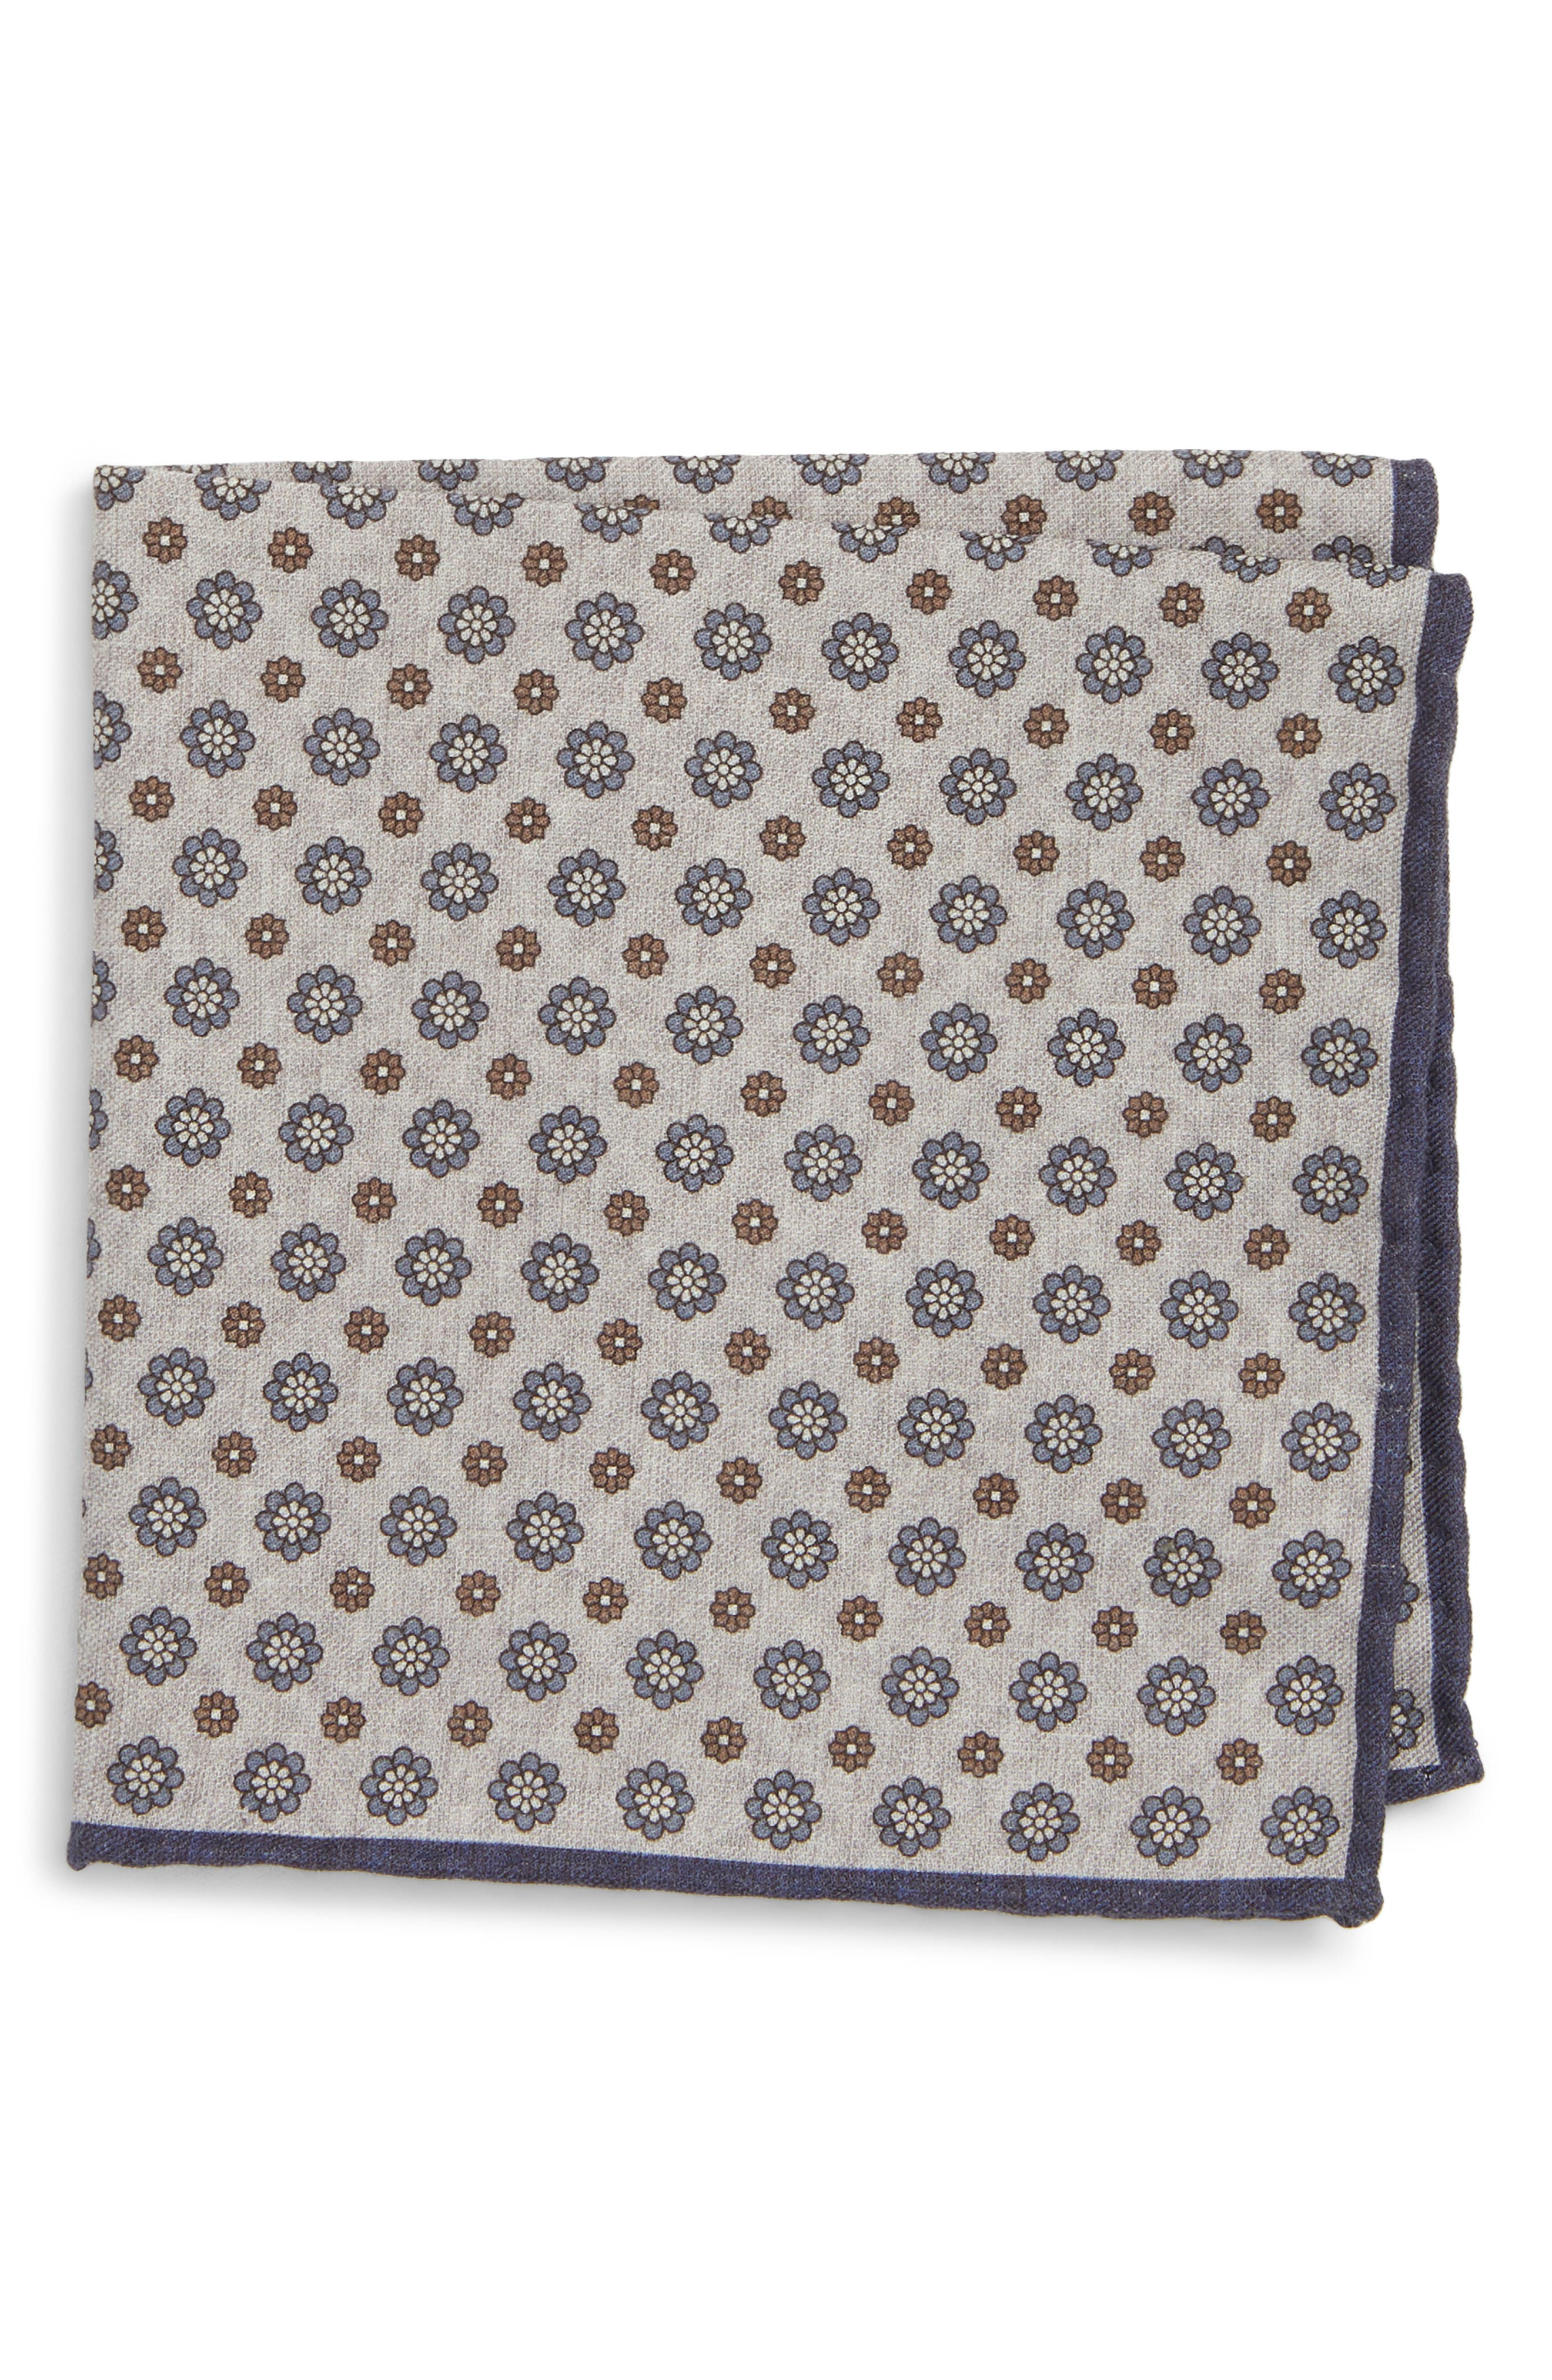 Medallion Wool & Cotton Pocket Square,                         Main,                         color, GREY/ BLUE